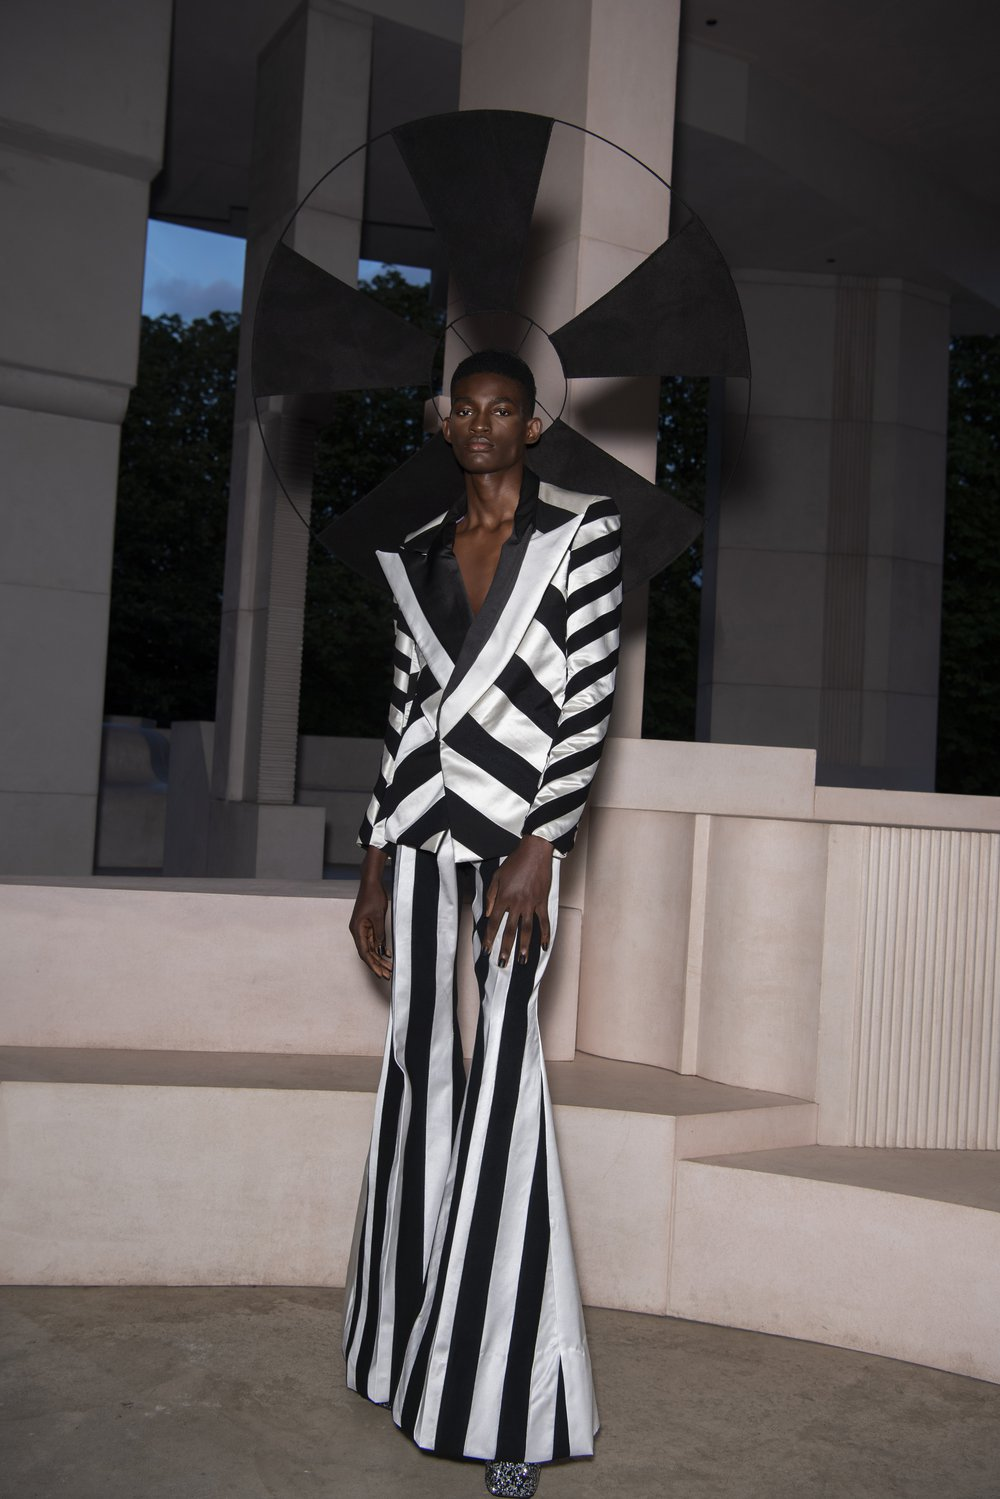 A model wears a black and white wide-striped satin suit made from pre loved Oxfam bridal wear and a black halo